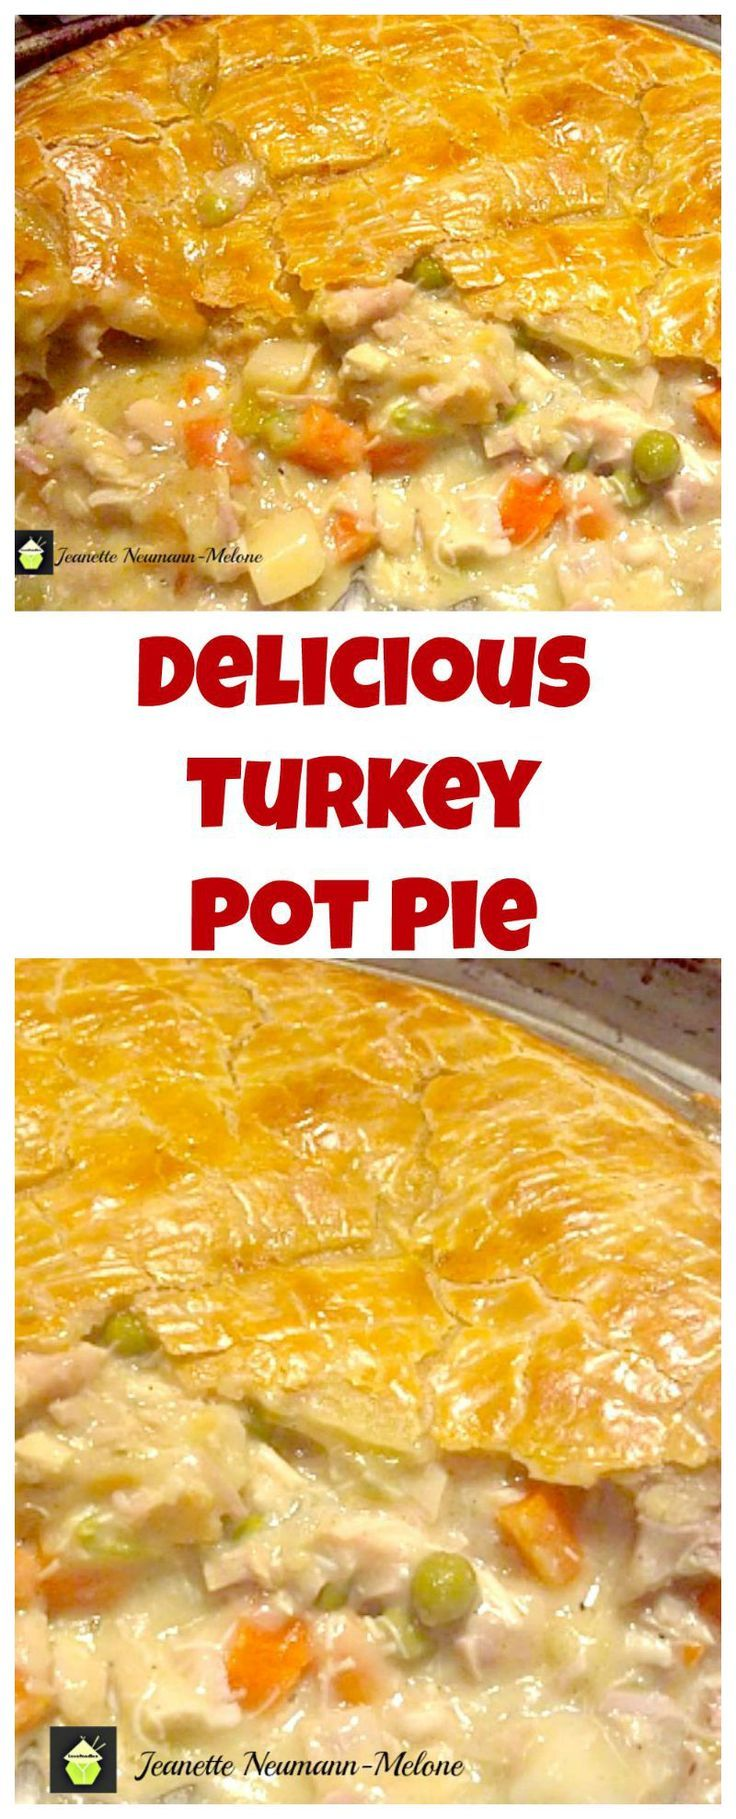 Photo of DELICIOUS Turkey Pot Pie, Look at that pie crust! I would also make this using chicken and ham together, a great combo! Oh my! Plus perfect for using up leftover turkey!